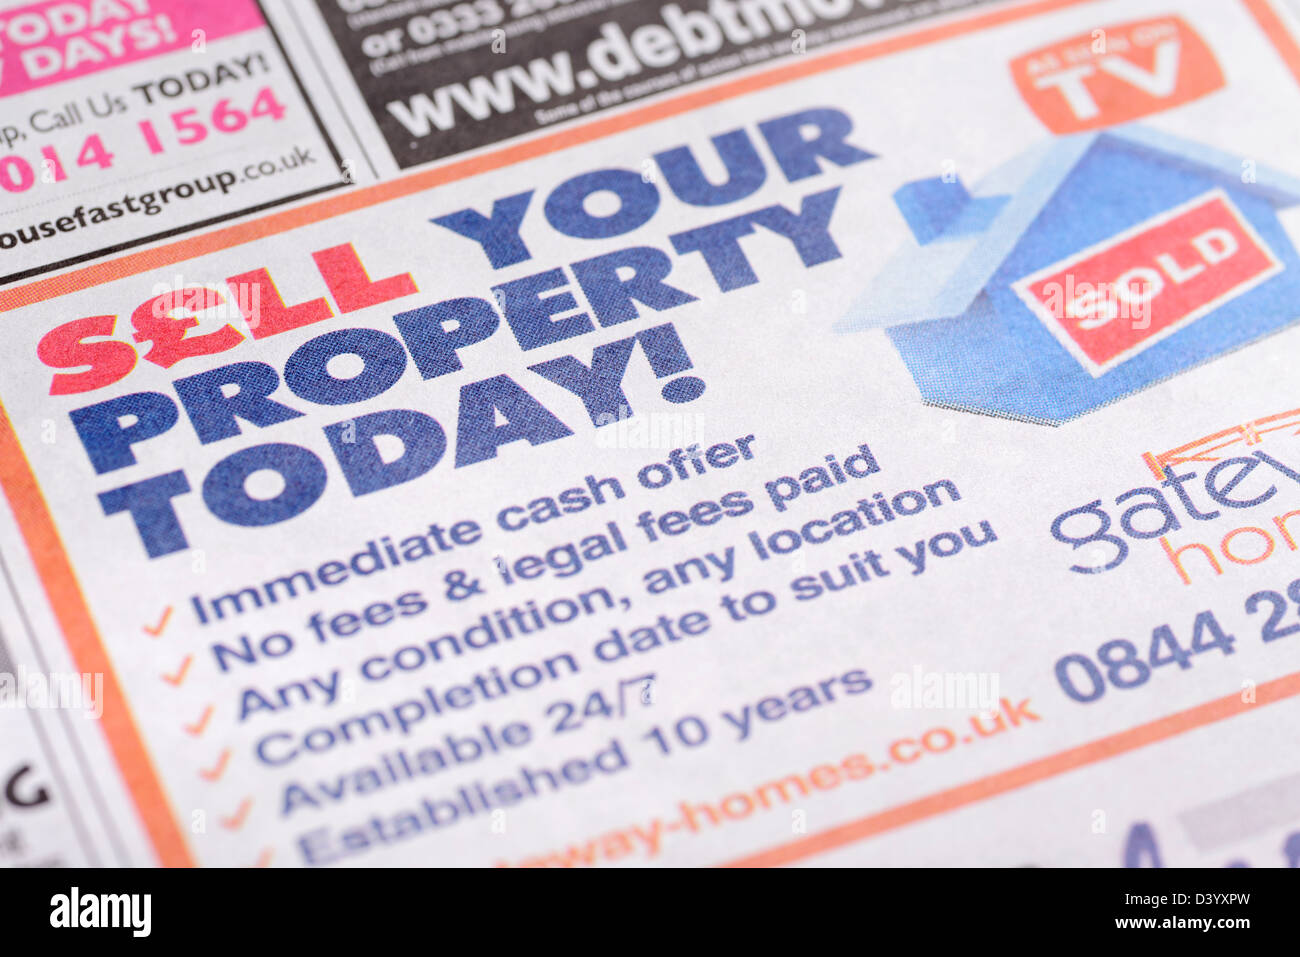 Sell Your Property for Cash Advertisement in a Newspaper, UK. - Stock Image